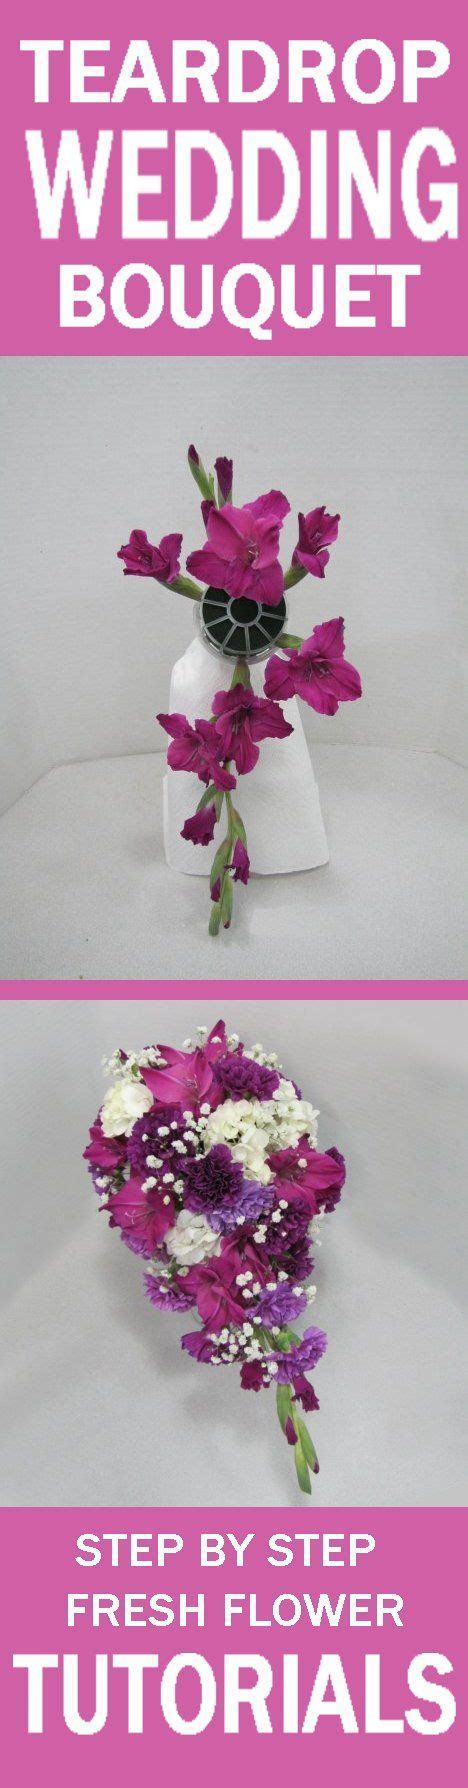 1000  images about How to Make a Wedding Bouquet on